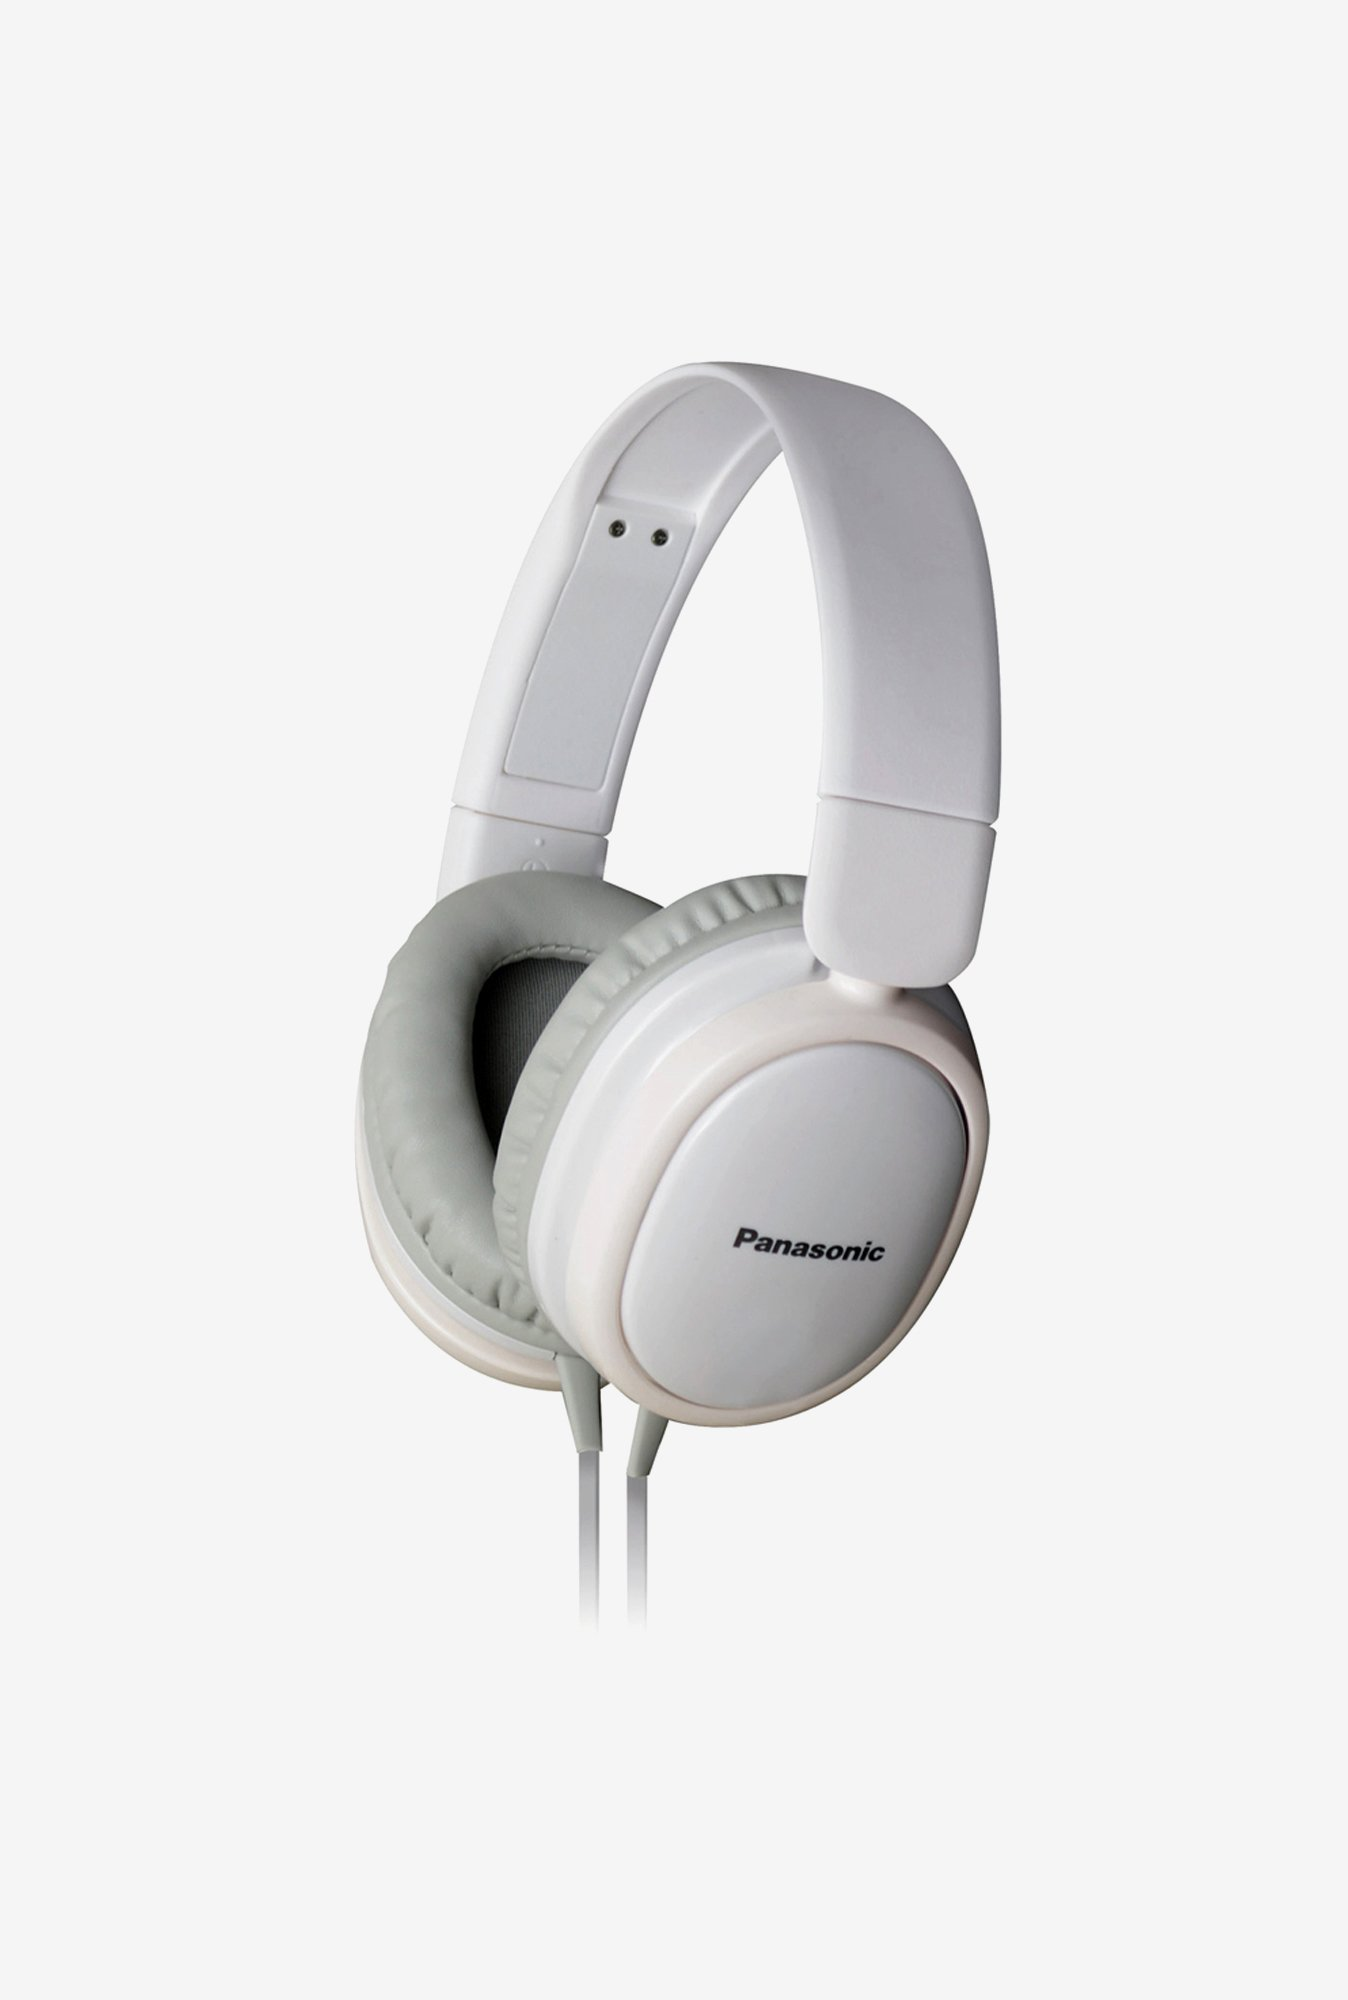 Panasonic RP-HX250ME-W Over The Ear Headphones (White)